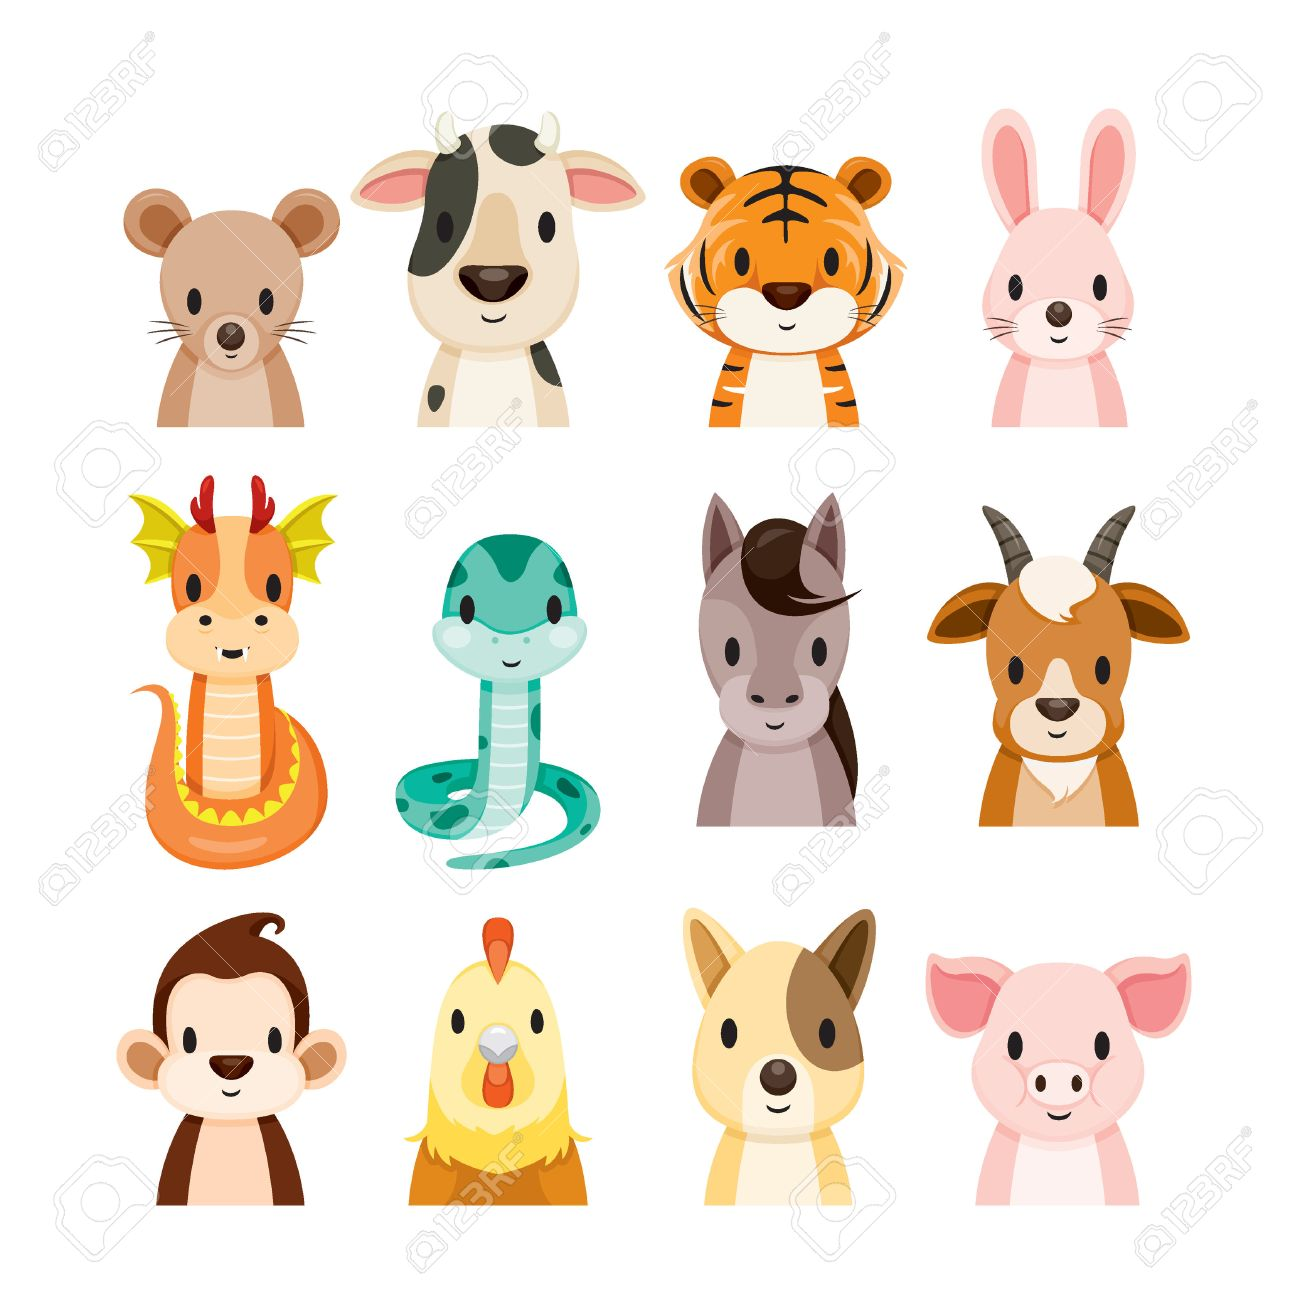 12 animals chinese zodiac signs icons set horoscope astrological 12 animals chinese zodiac signs icons set horoscope astrological constellation eastern buycottarizona Image collections